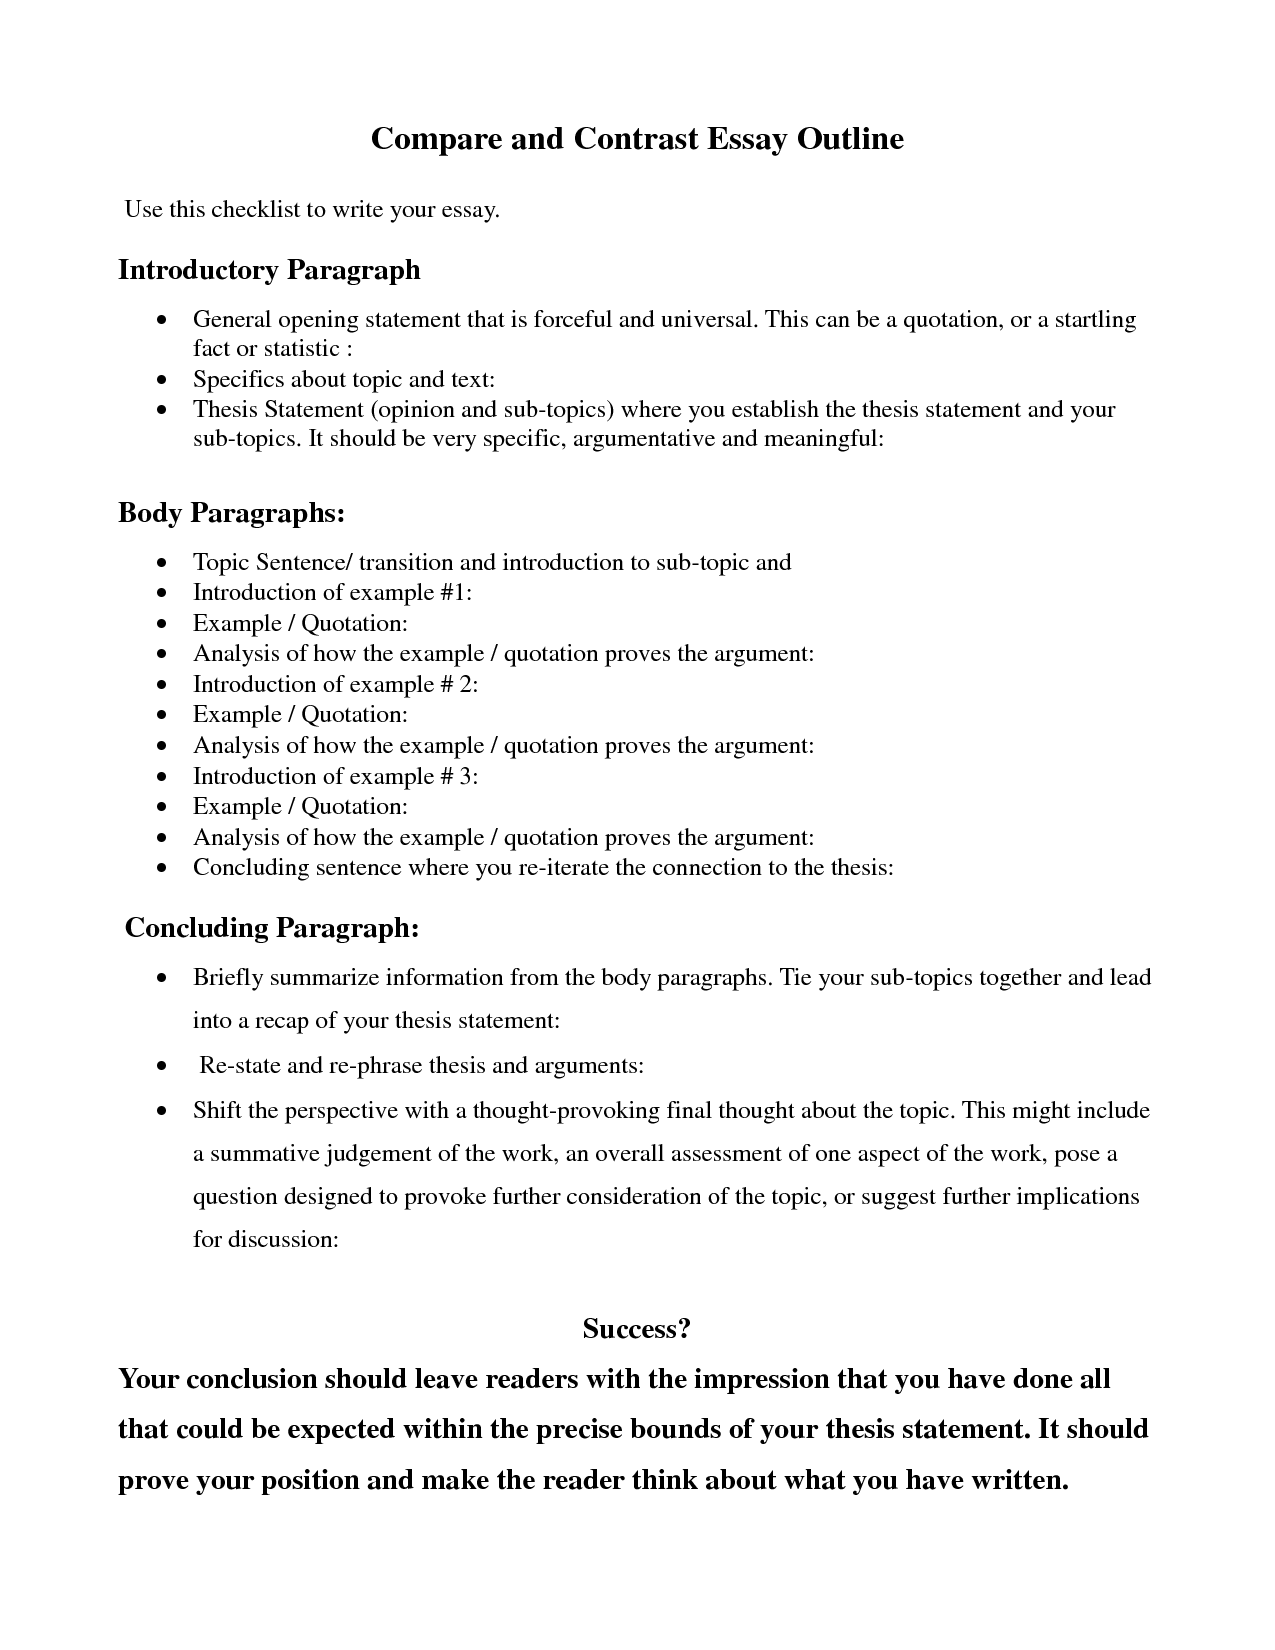 Comparecontrast Essay Outline  Google Search  Education  Thesis  Comparecontrast Essay Outline  Google Search Example Of An English Essay also Online Proofreader  Compare And Contrast Essay Examples High School